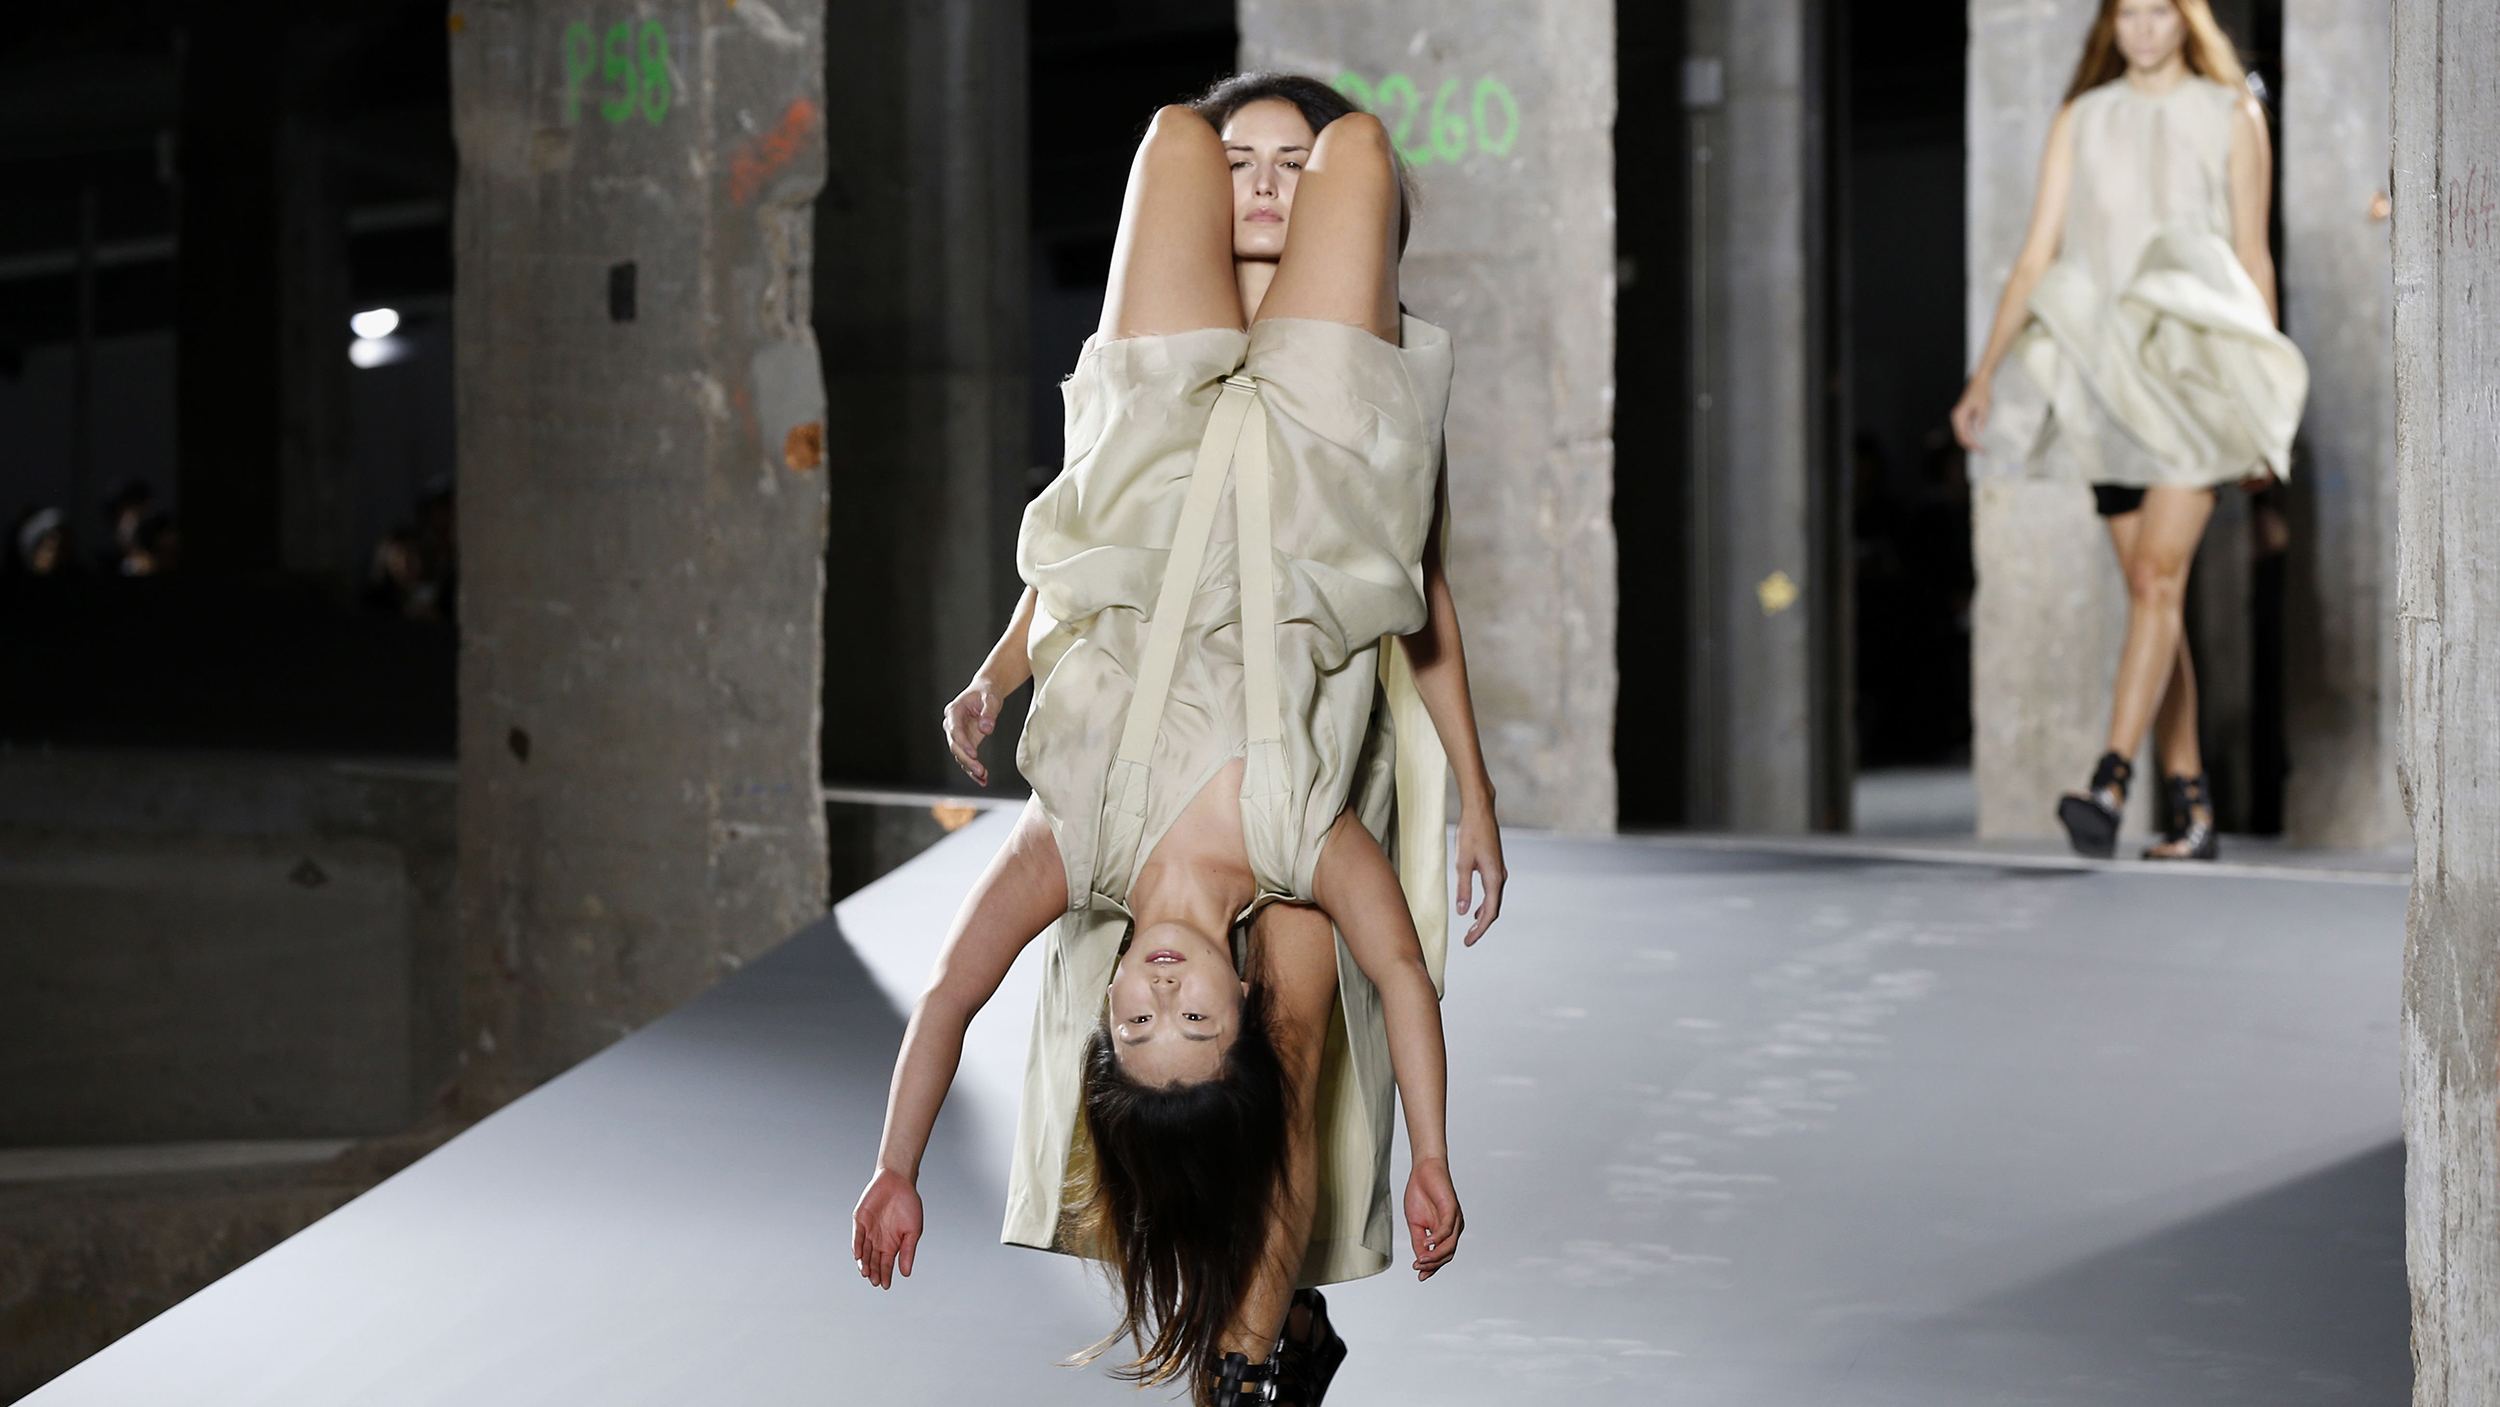 Rick owens fashion show has models wearing people backpacks Style me pink fashion show